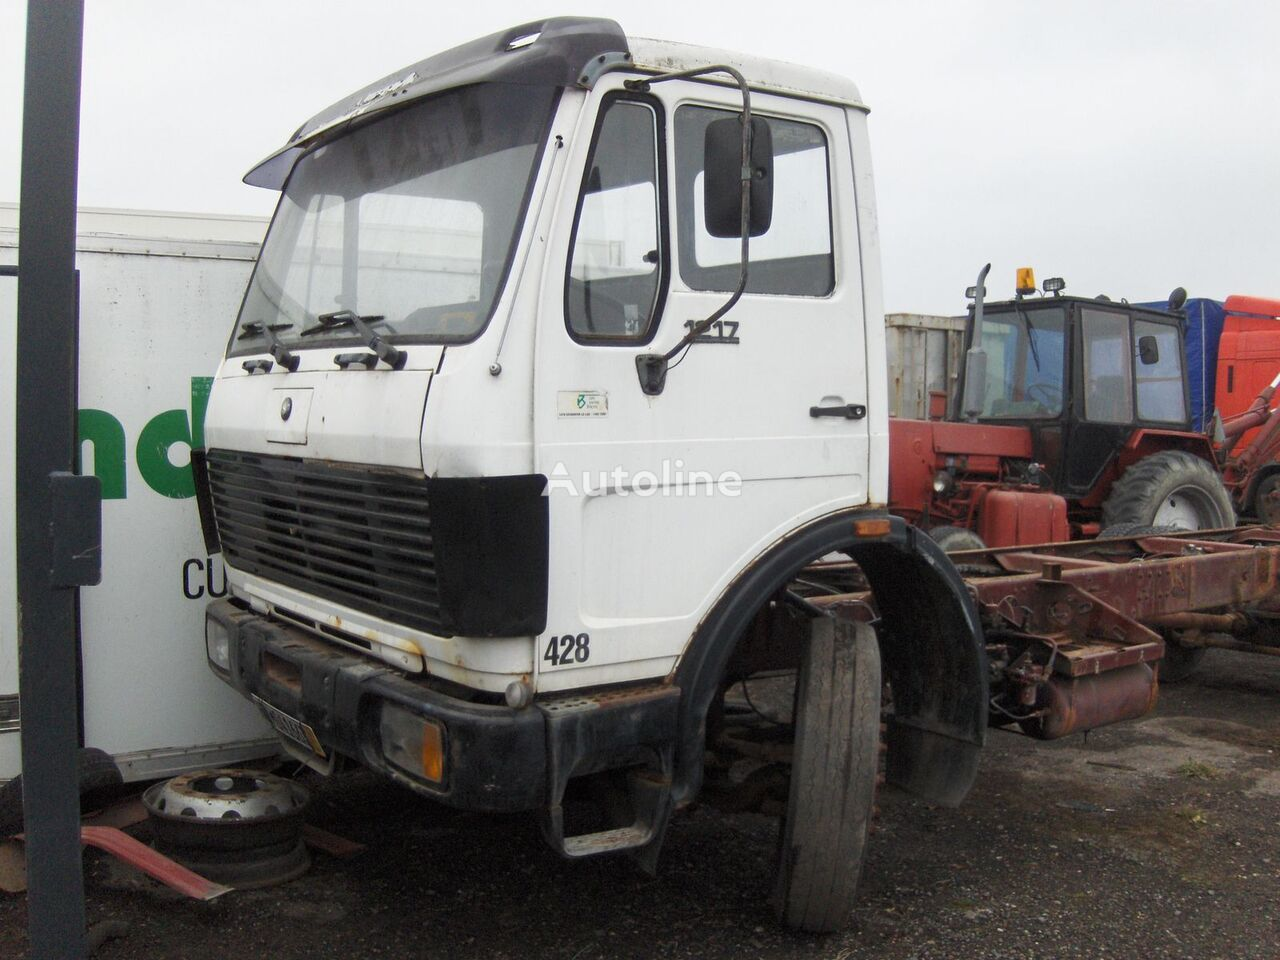 MERCEDES-BENZ 1217 EcoPower chassis trucks for sale, chassis cab from  Poland, buy chassis truck, GF8745